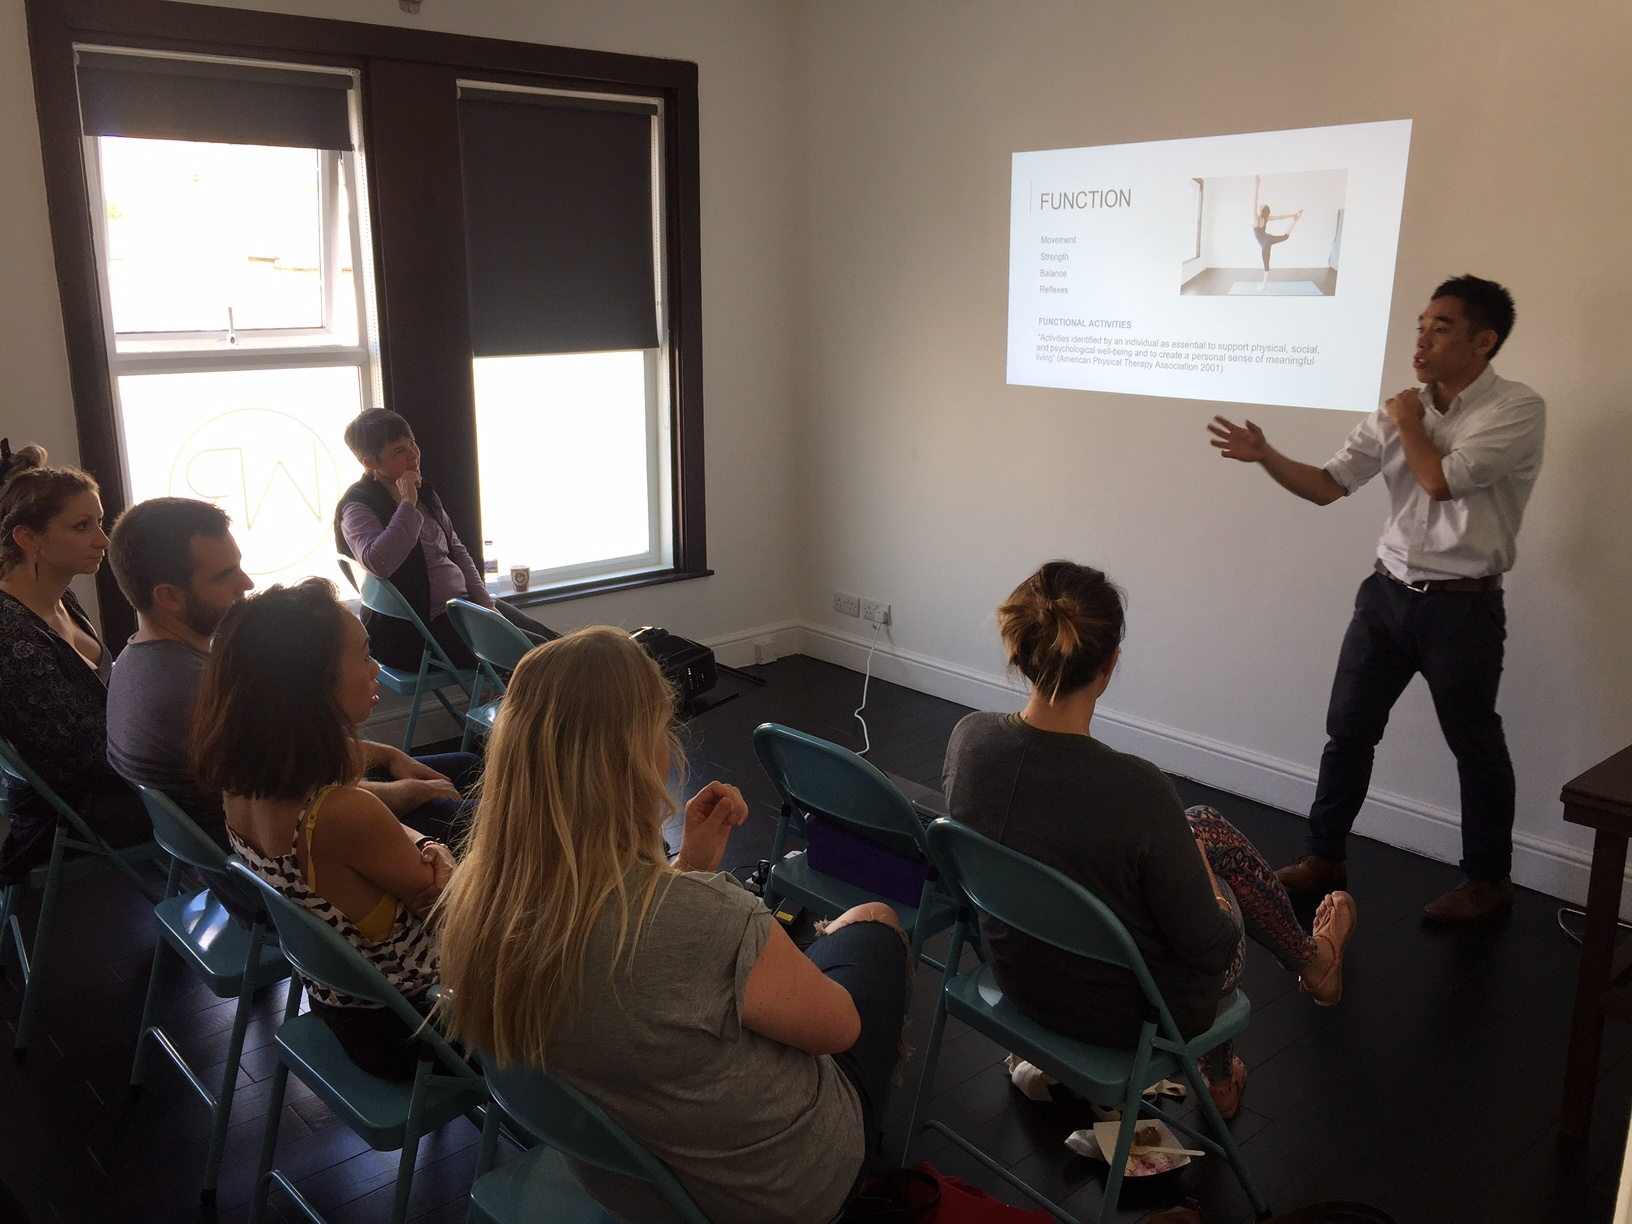 It was a full house for Chiropractor Simon who presented a talk on the basics of spinal health